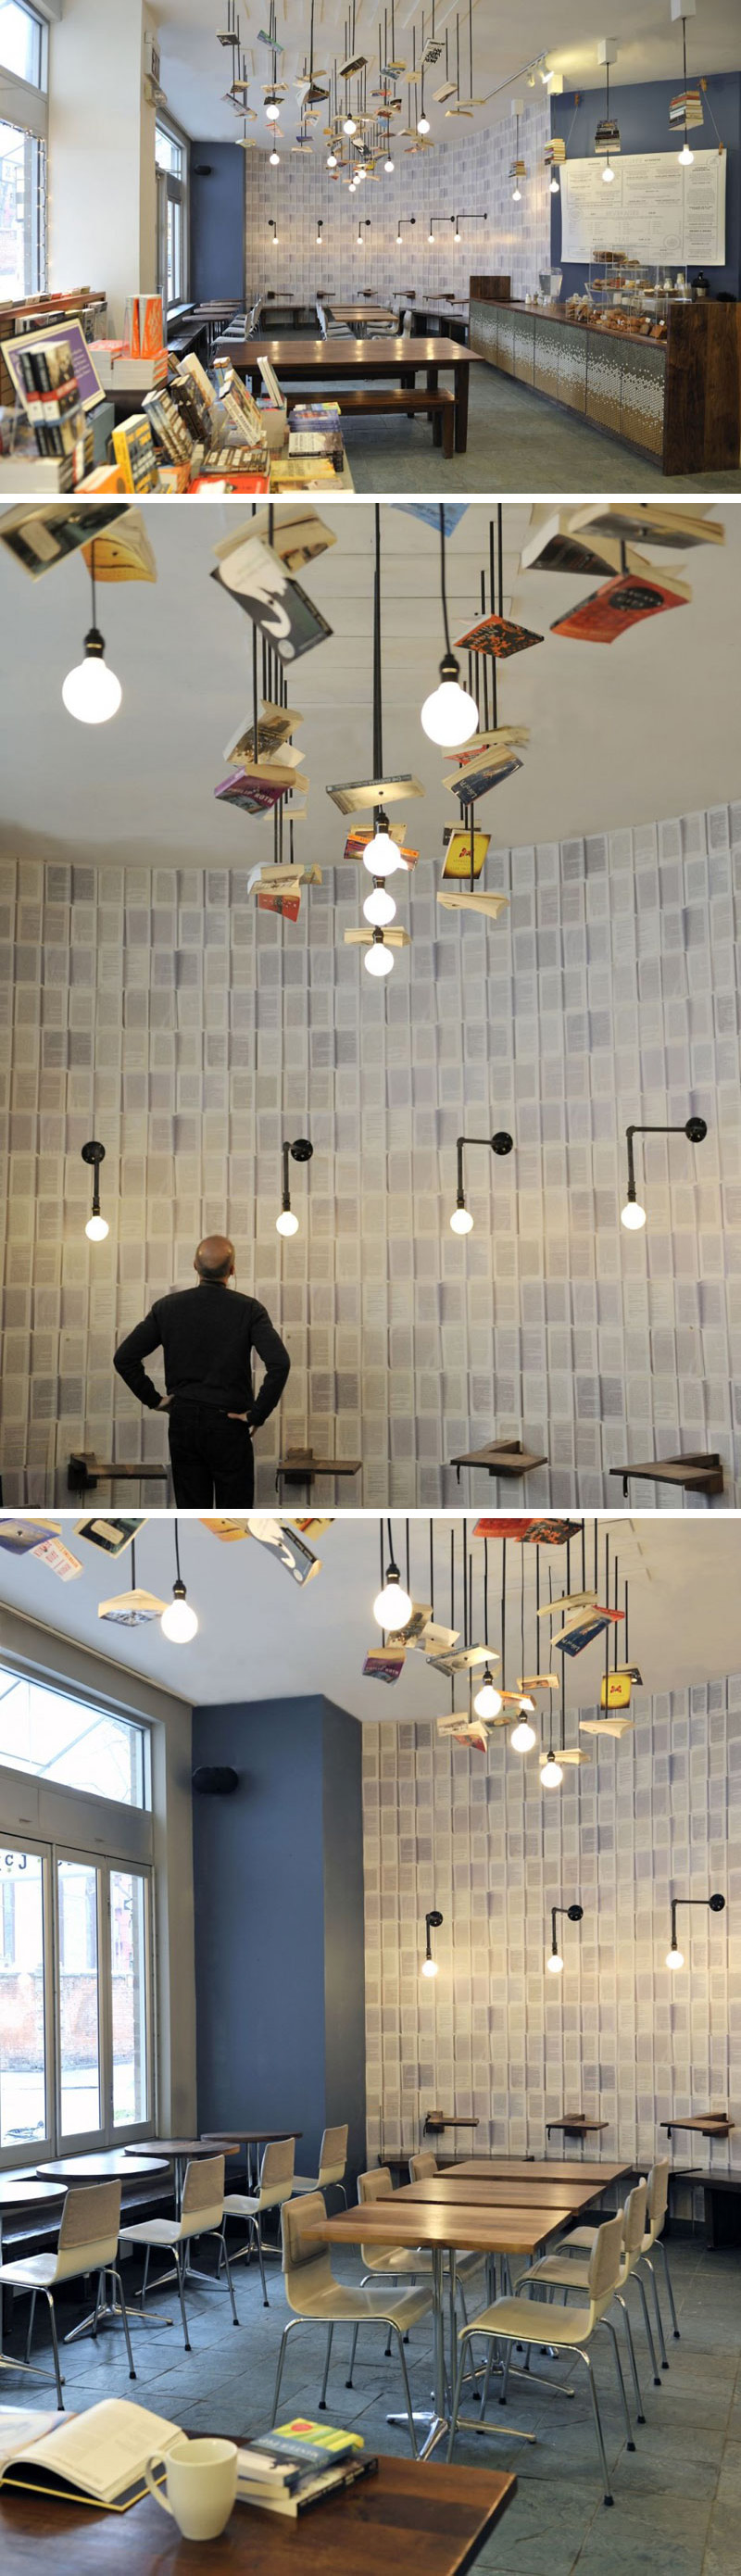 This modern cafe is attached to the McNally Jackson Bookstore and features wallpaper made from open spined books and a light installation with hanging books sprinkled throughout it.